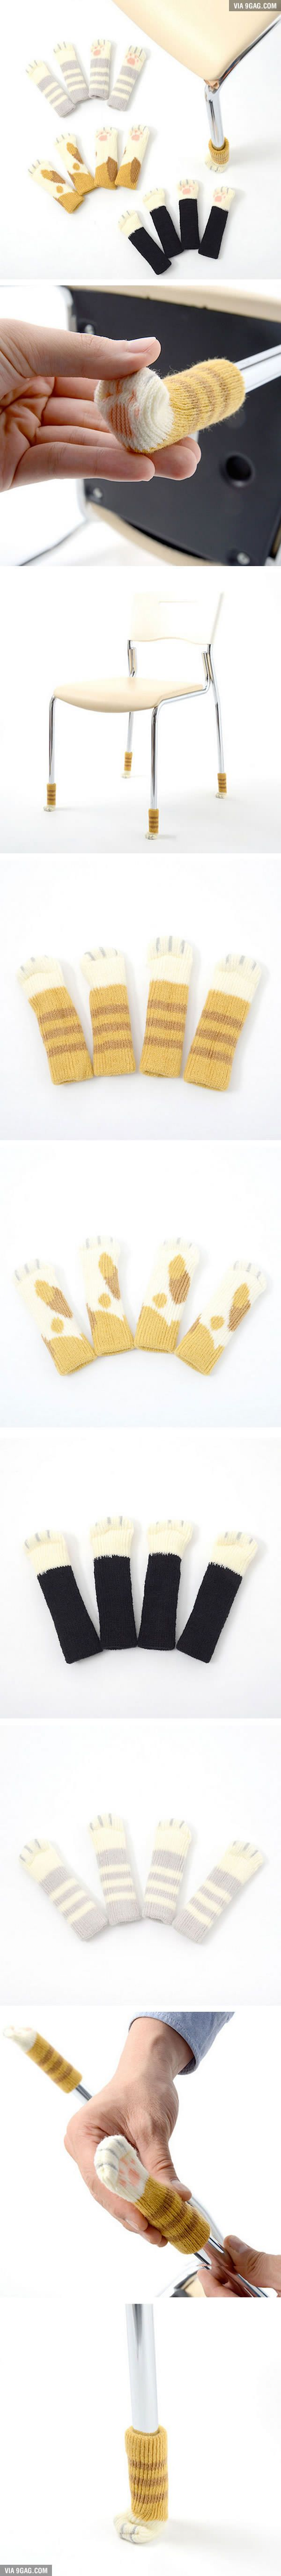 Cat Socks For Tables And Chairs That Protect Your Floor